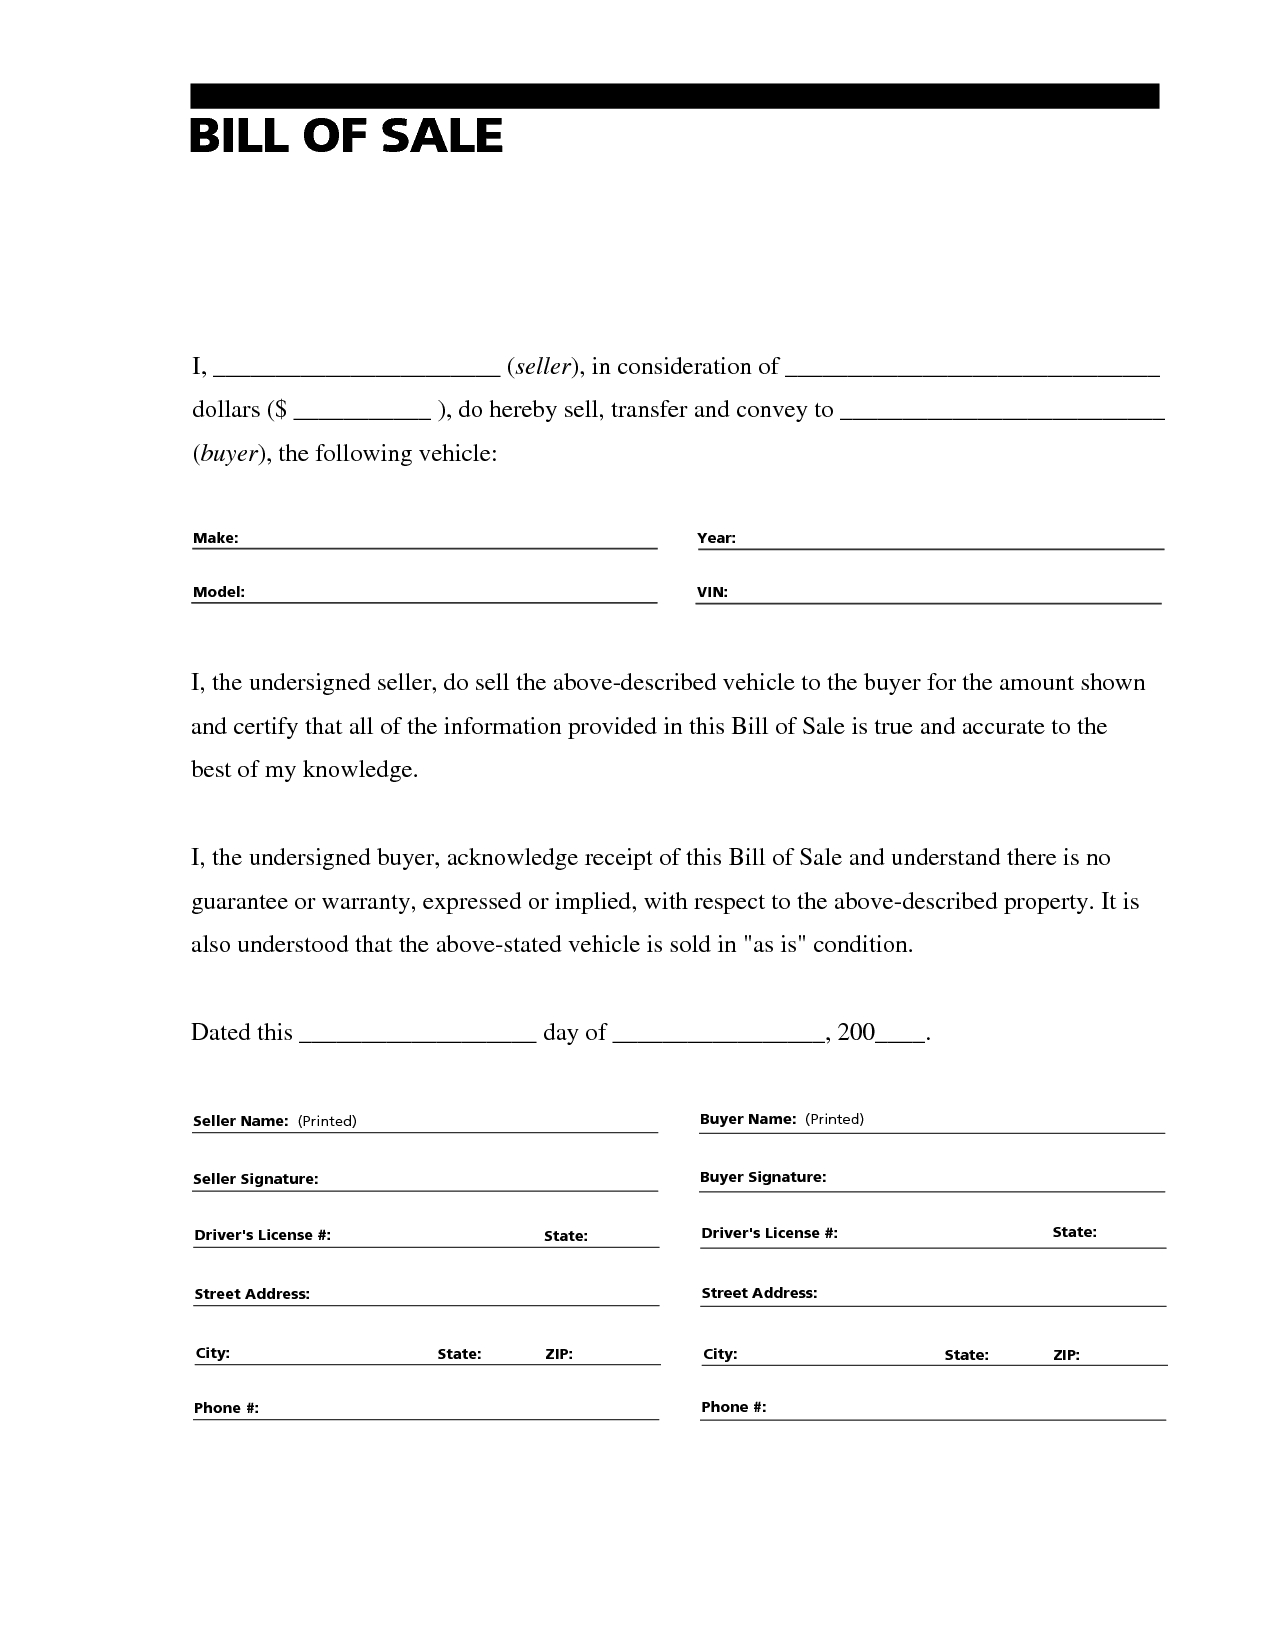 Letter Of Intent to Purchase Business Template Free - Printable Sample Free Car Bill Of Sale Template form